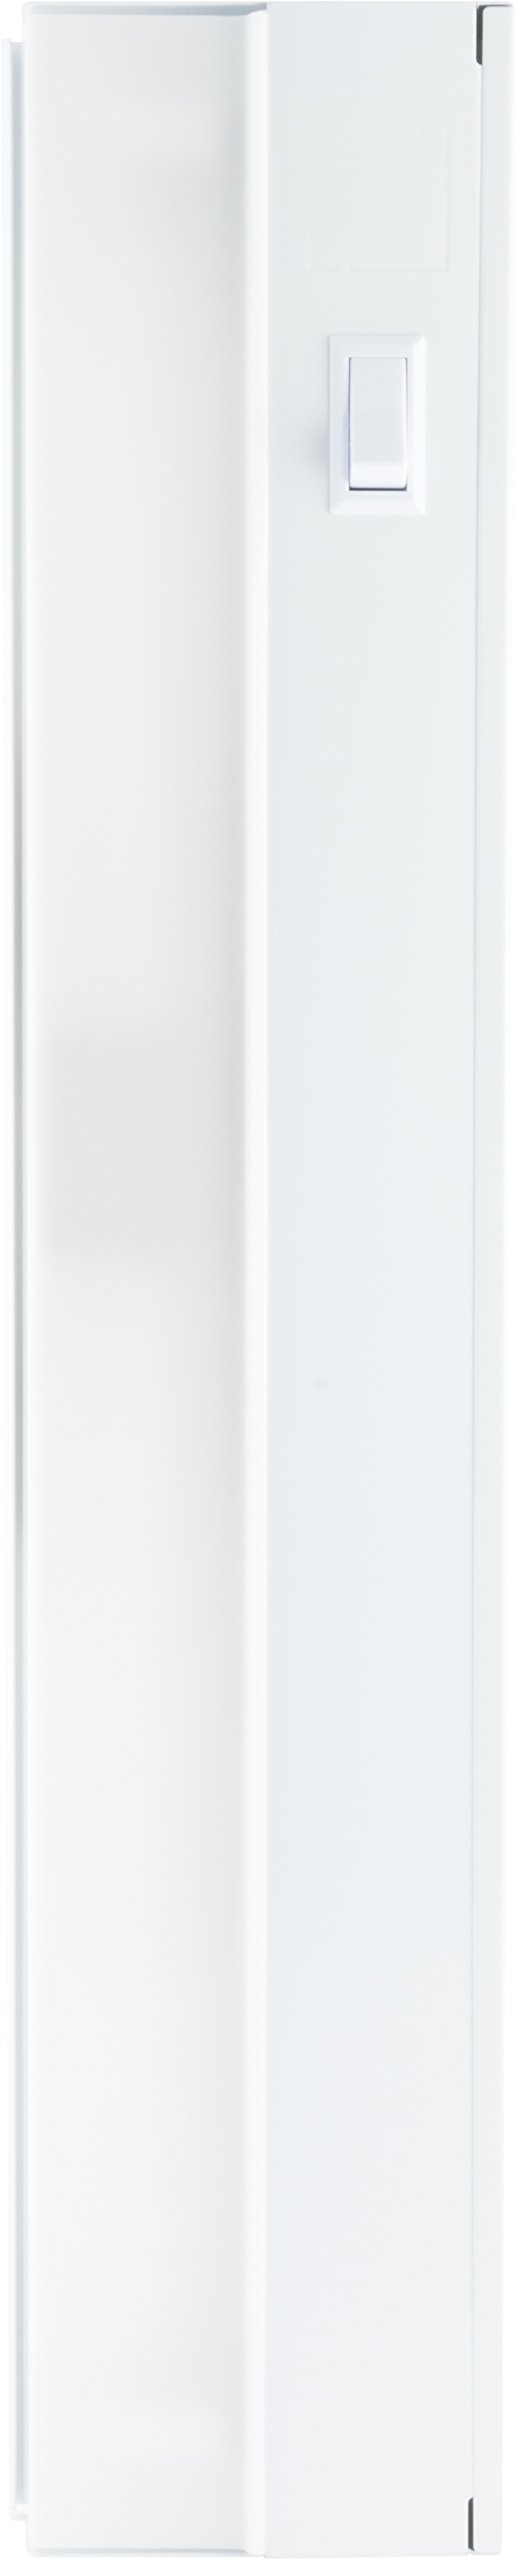 Recessed Steplight RFL1-A NEW HADCO